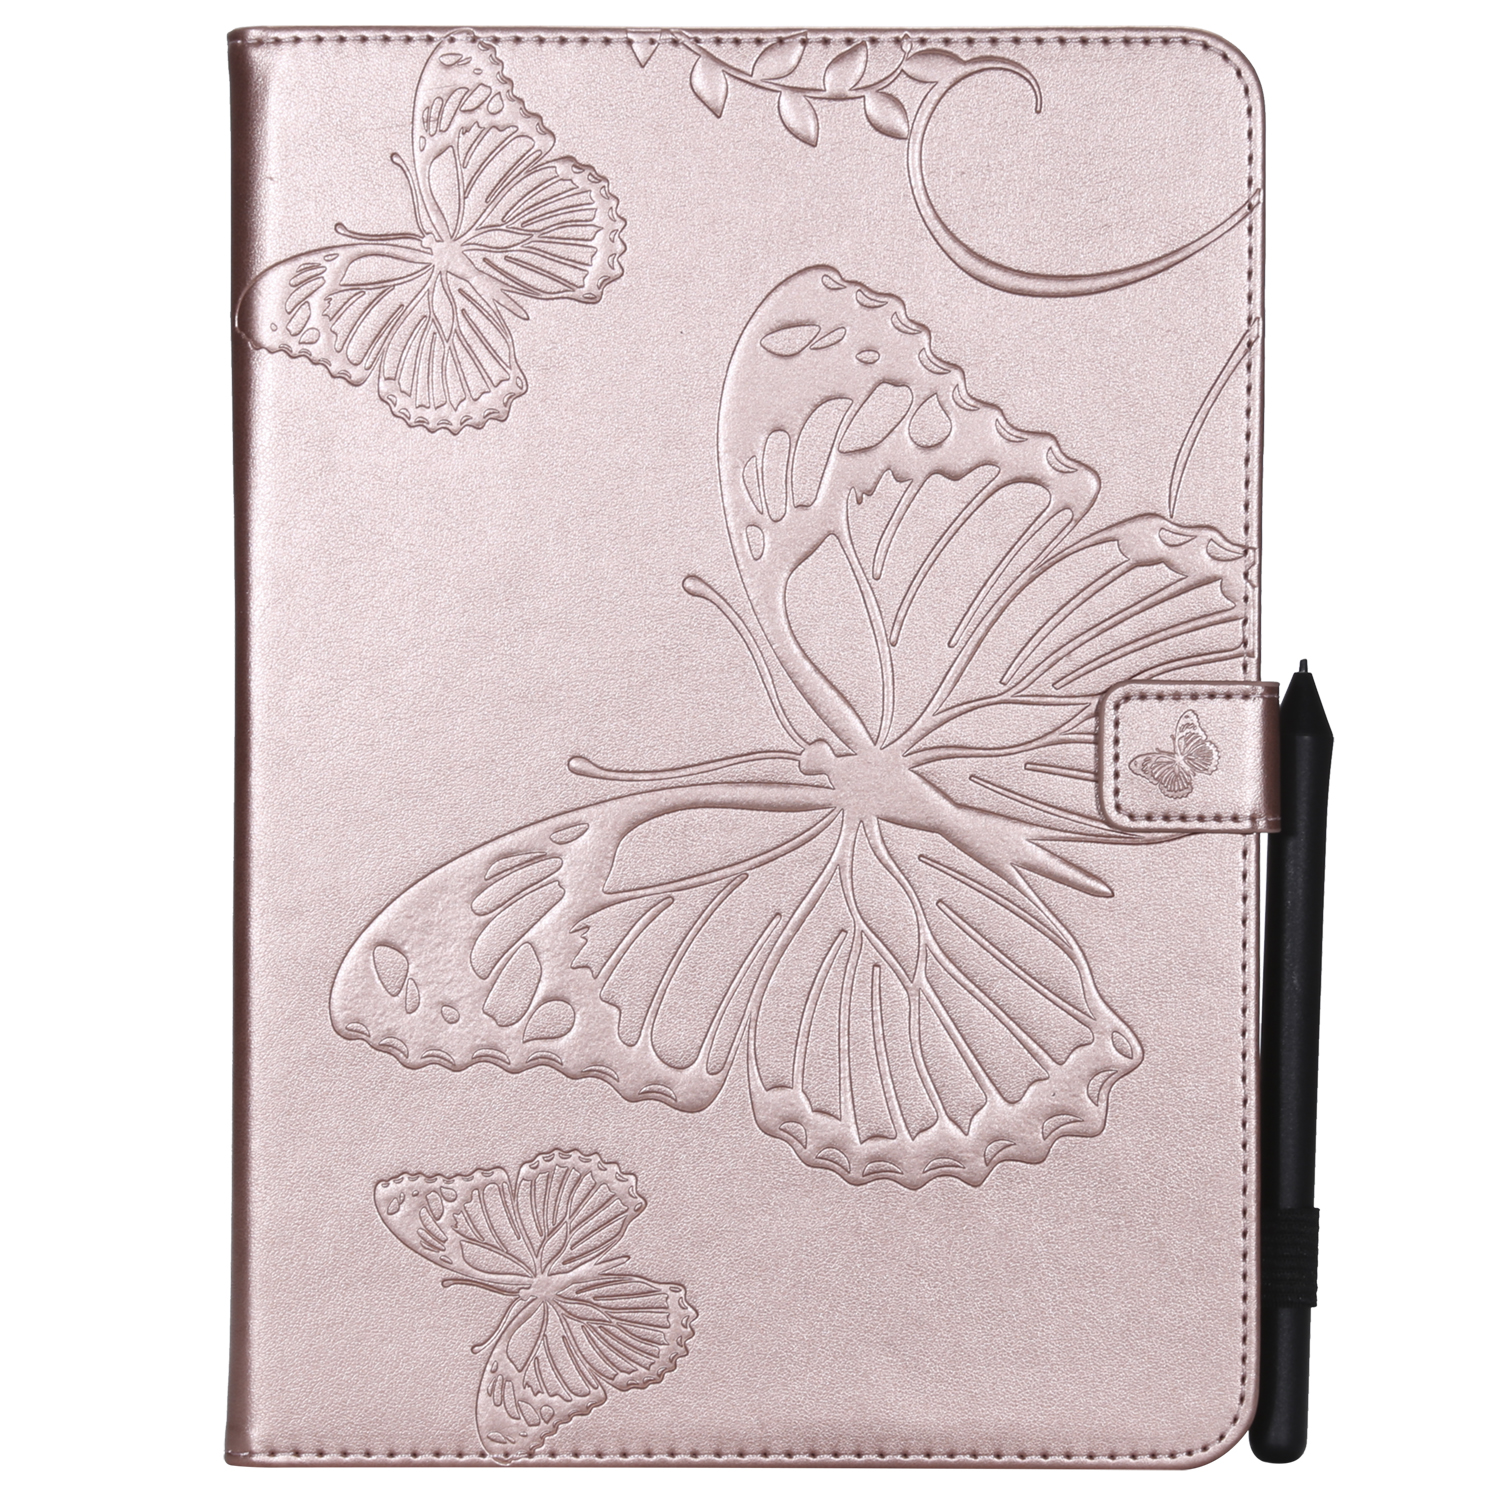 For iPad 5/6/air1/air2 9.7 Fashion Butterfly Embossed PU Leather Magnetic Closure Stand Case Auto Wake/Sleep Cover with Pen Slot Rose gold